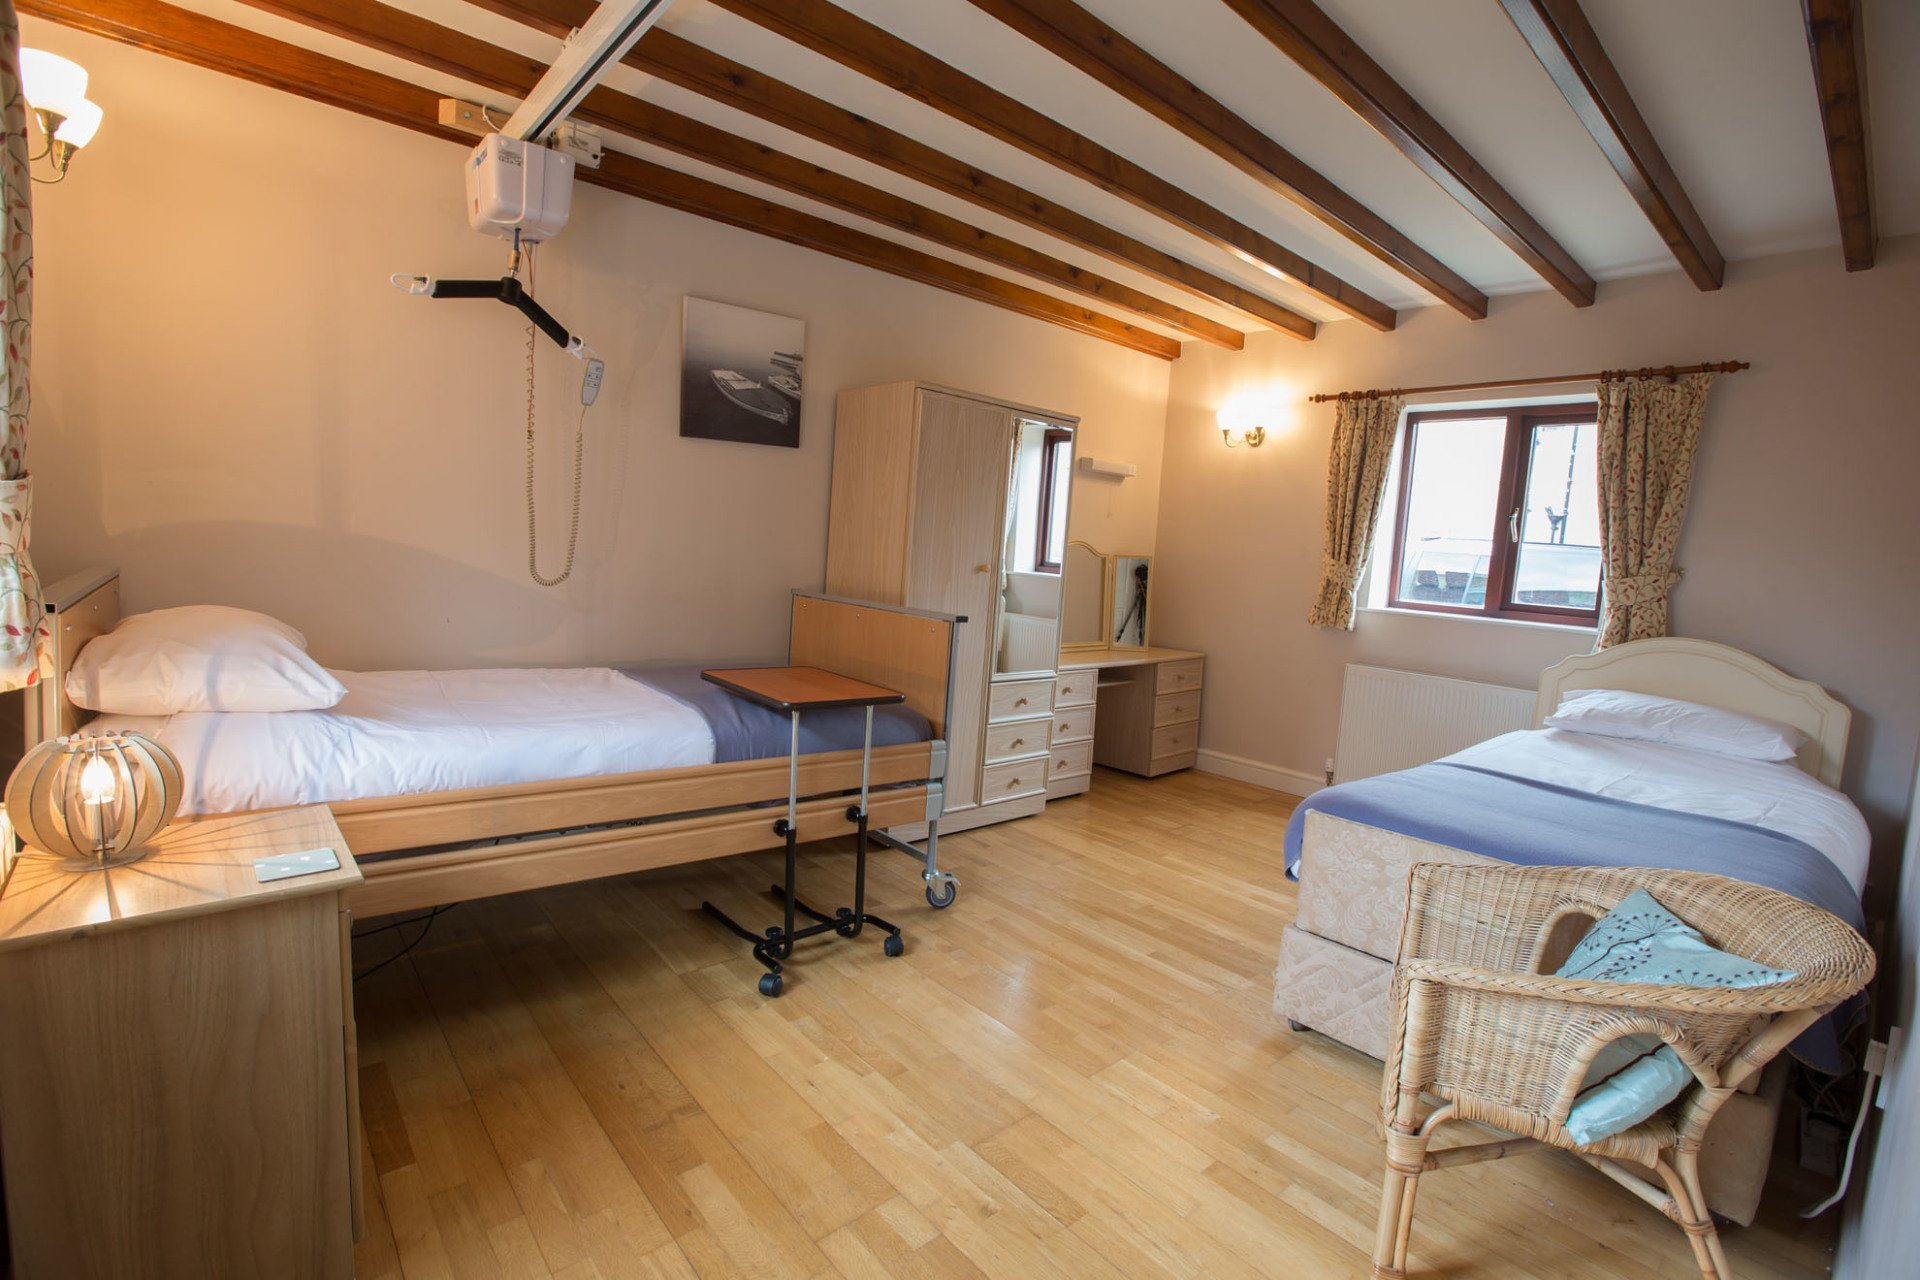 Accessible Accommodation Uk Wheelchair Friendly Disabled